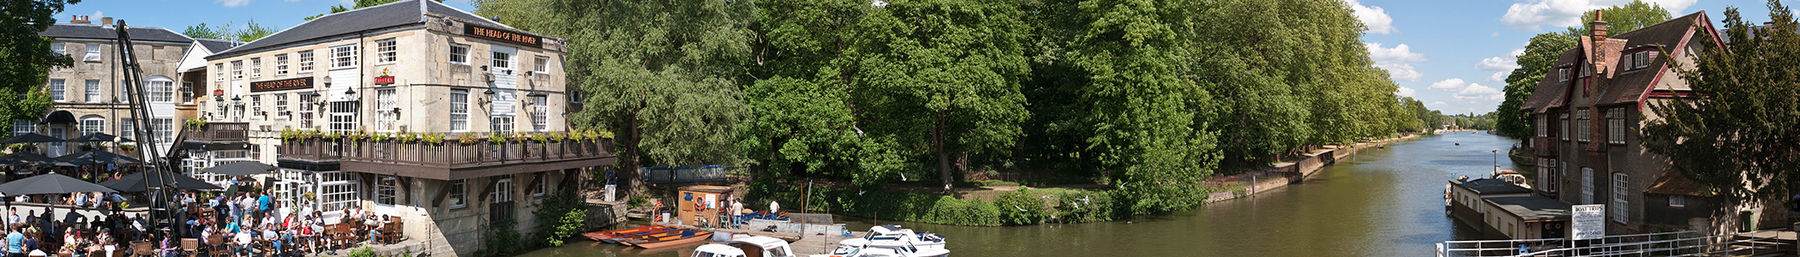 Oxford banner River Thames.jpg